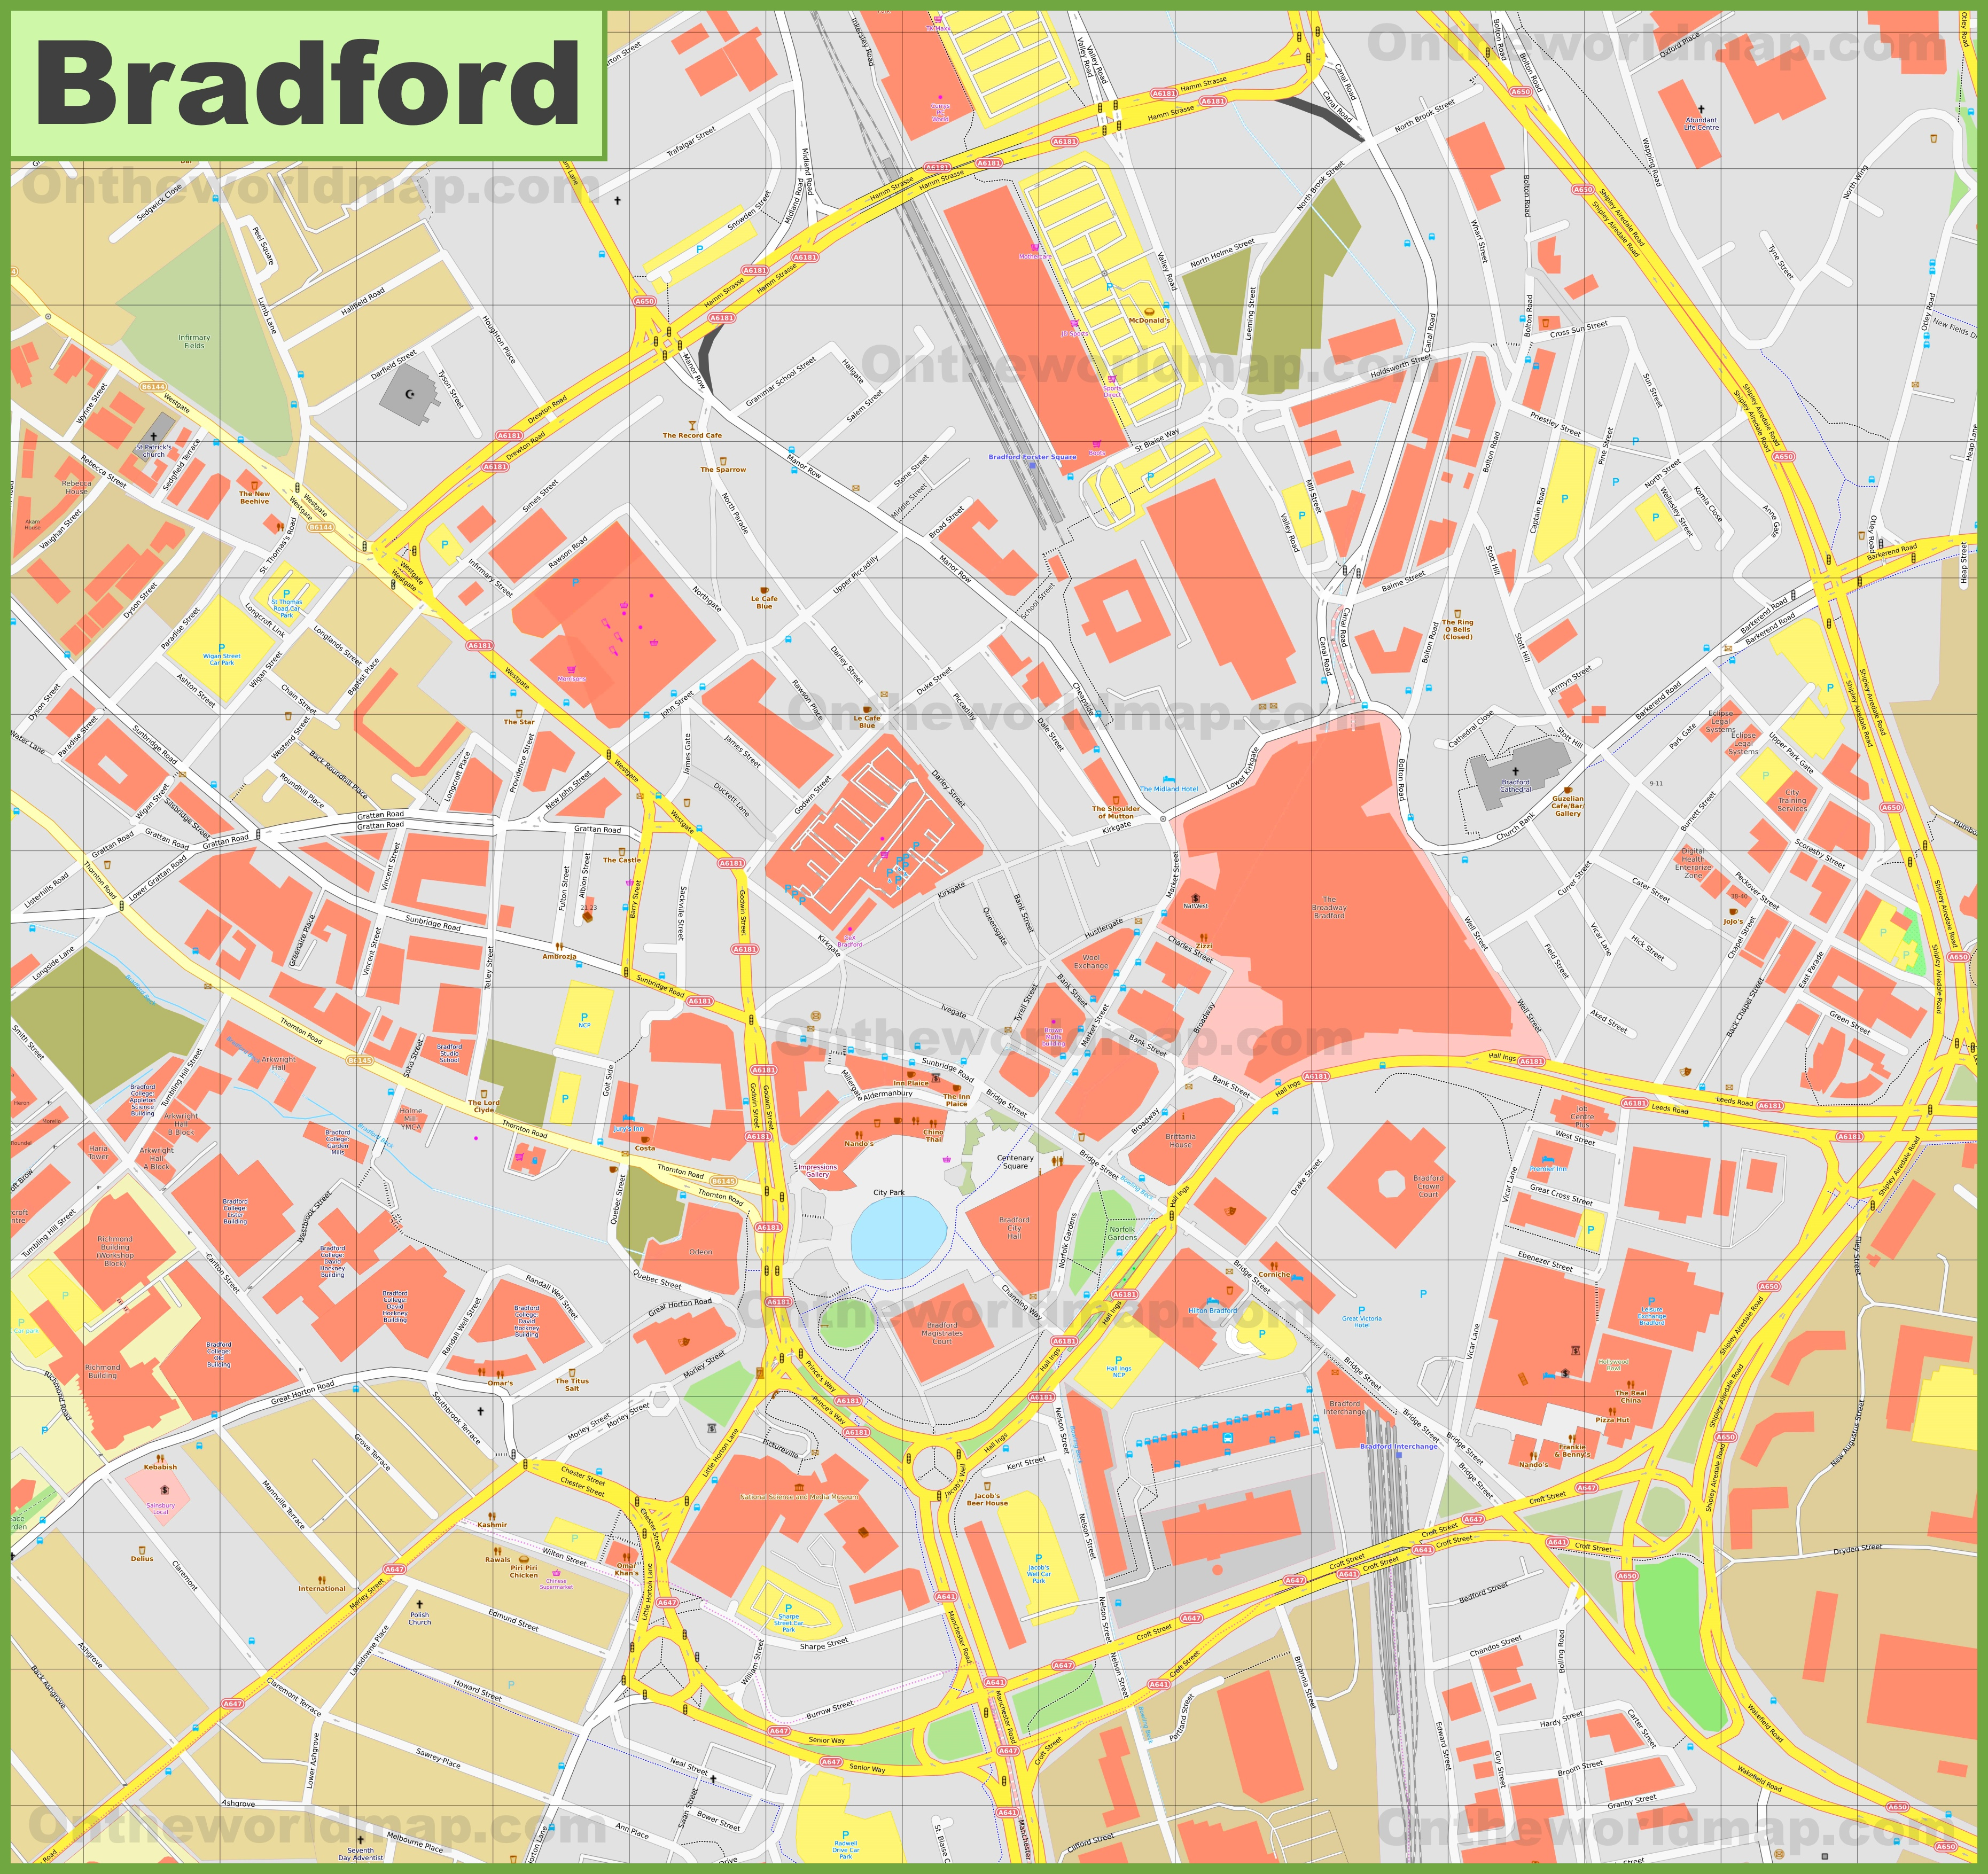 Bradford Maps UK Maps of Bradford